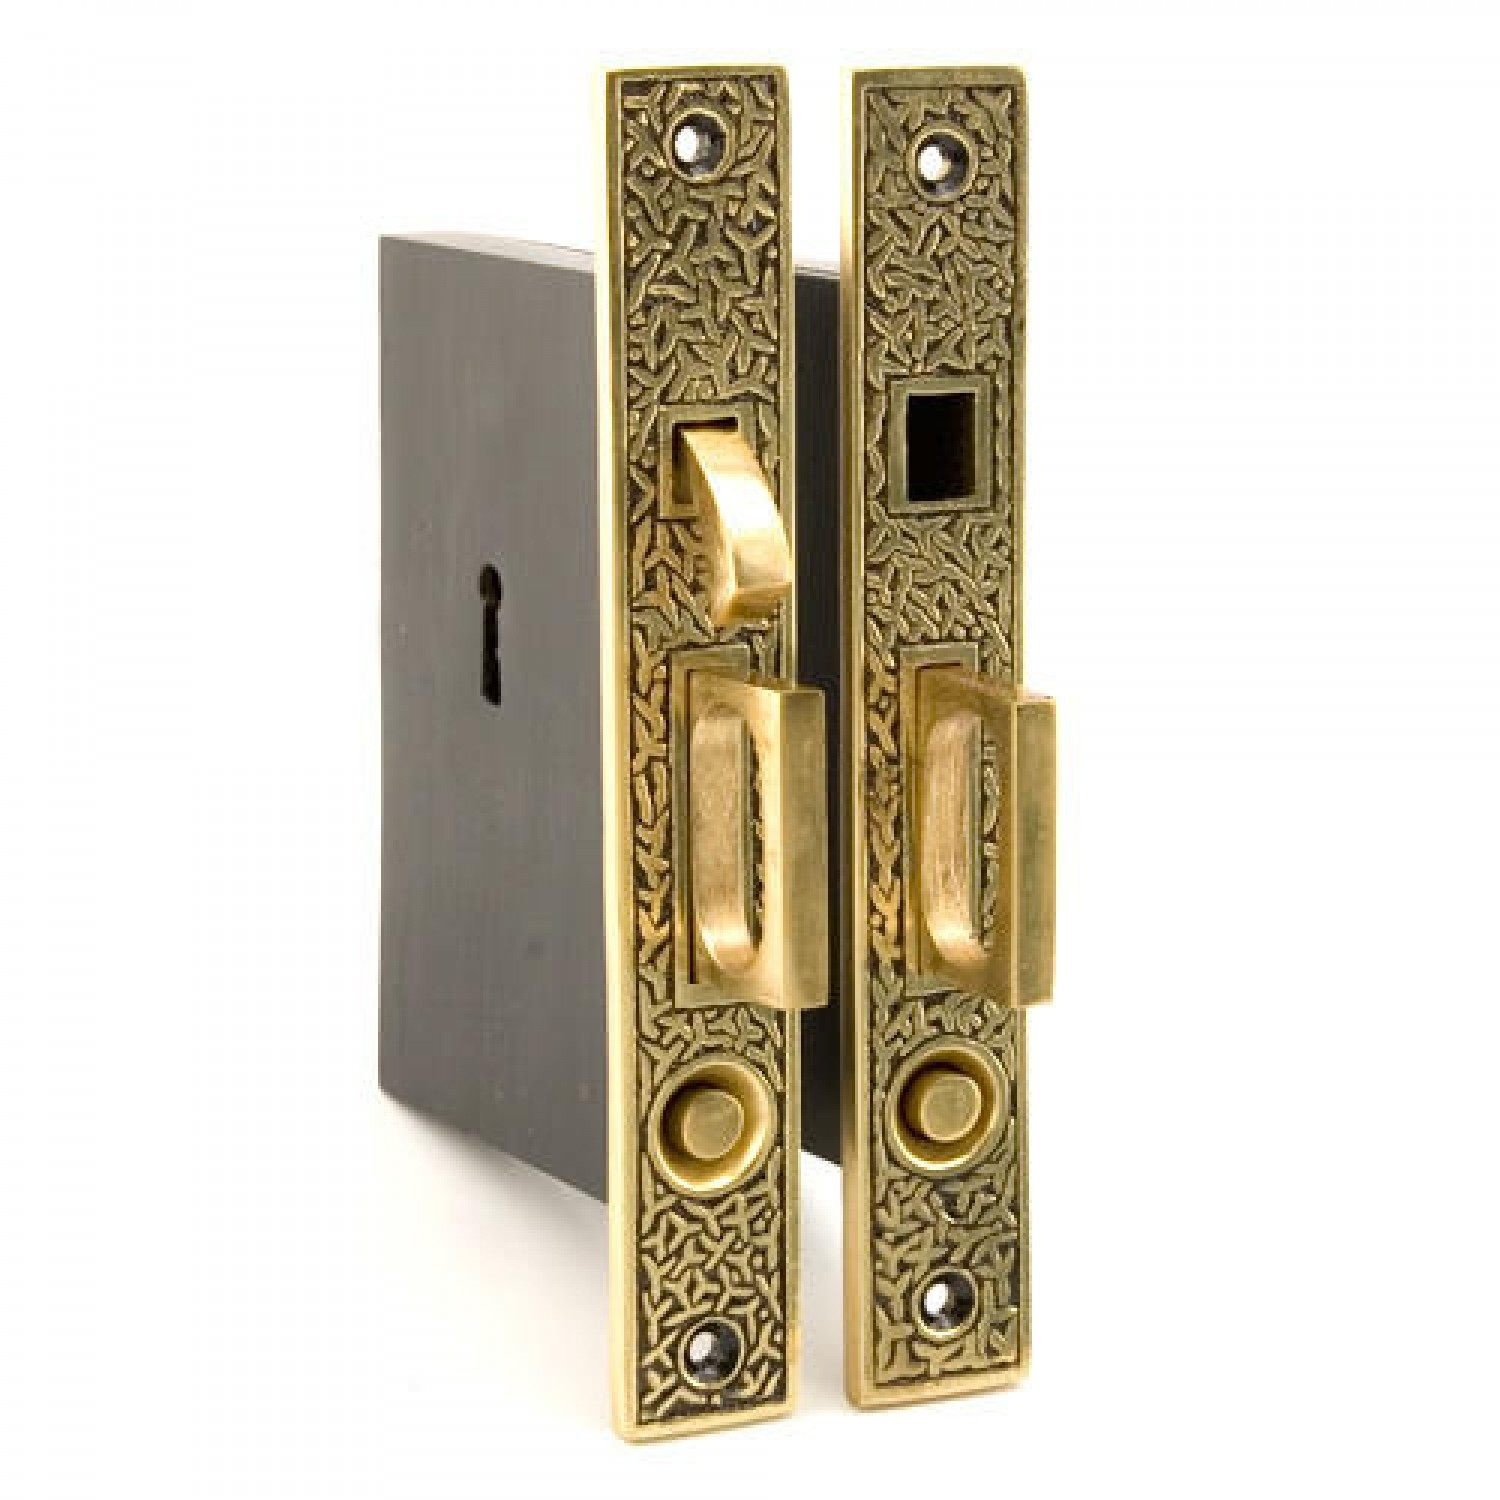 Privacy Pocket Door Mortise Lock Set With Rectangular Pulls rice pattern double pocket door mortise lock privacy blackened 1500 X 1500